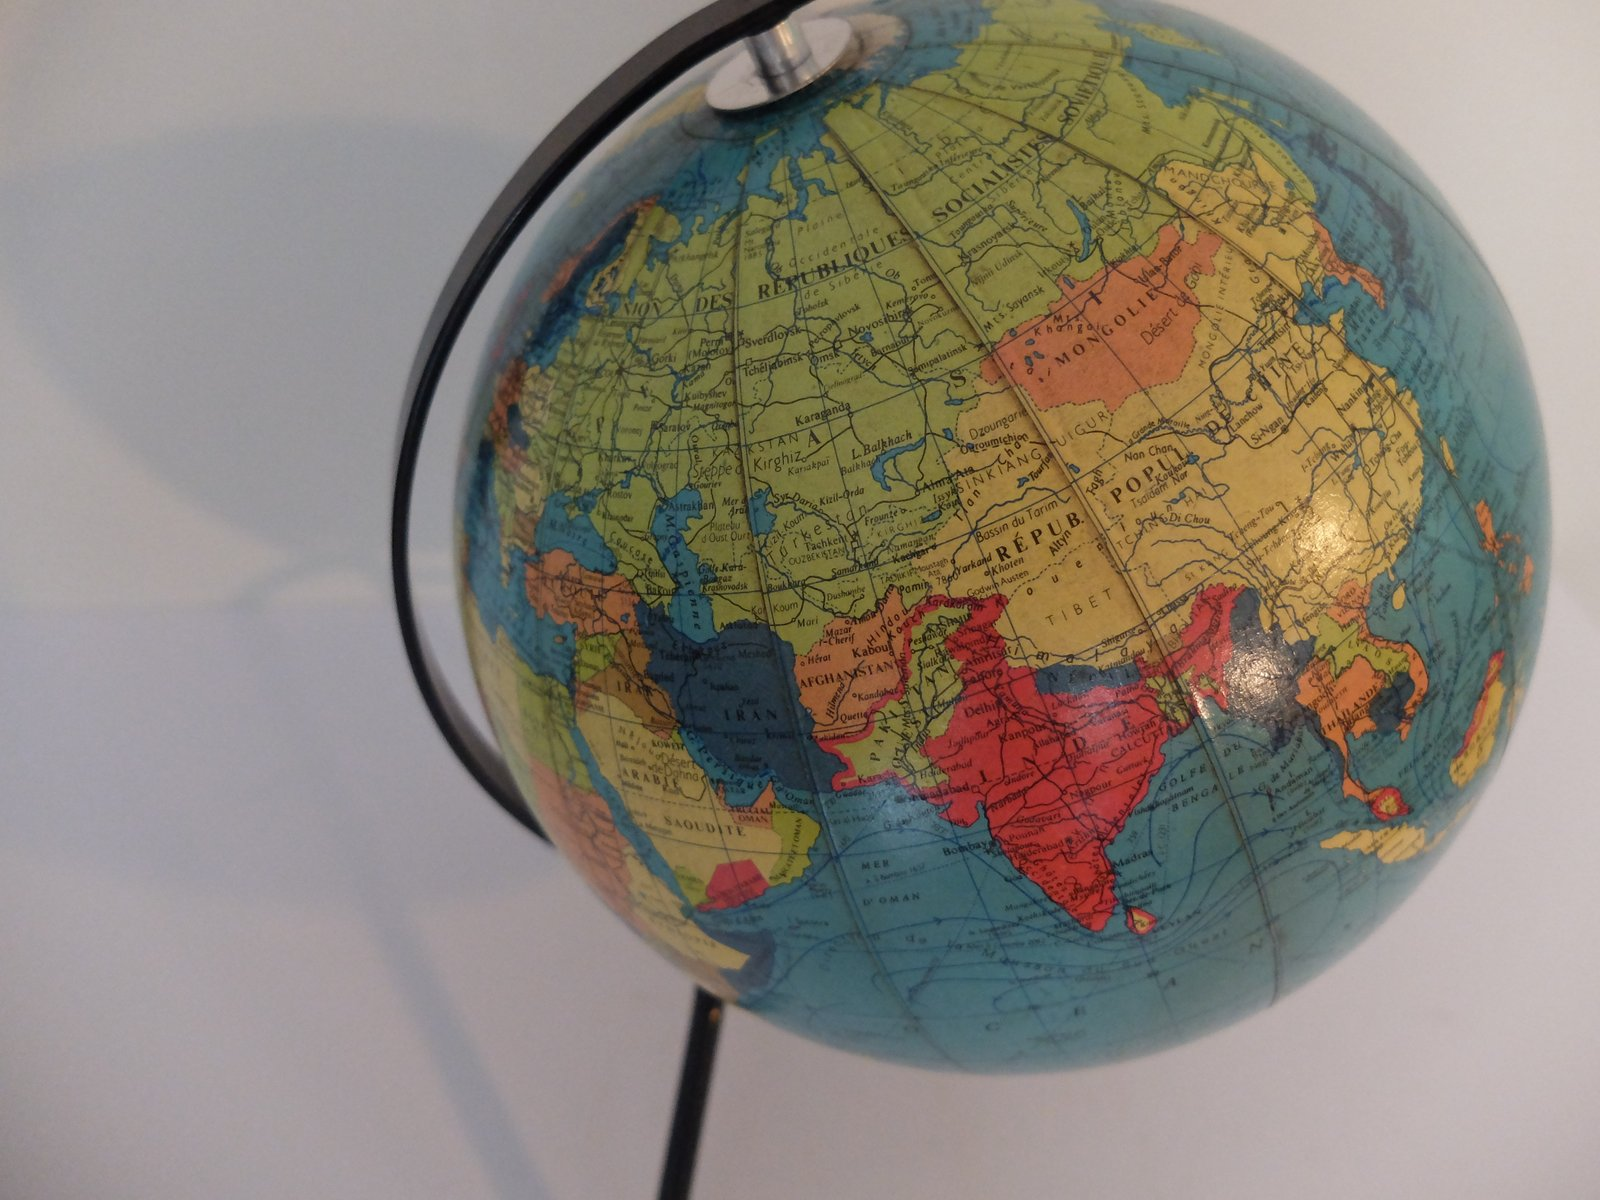 Map globes for sale path decorations pictures full path decoration world map globes for sale best of download europe globe map map of world map globes for sale best of download europe globe map world map globes for sale gumiabroncs Gallery